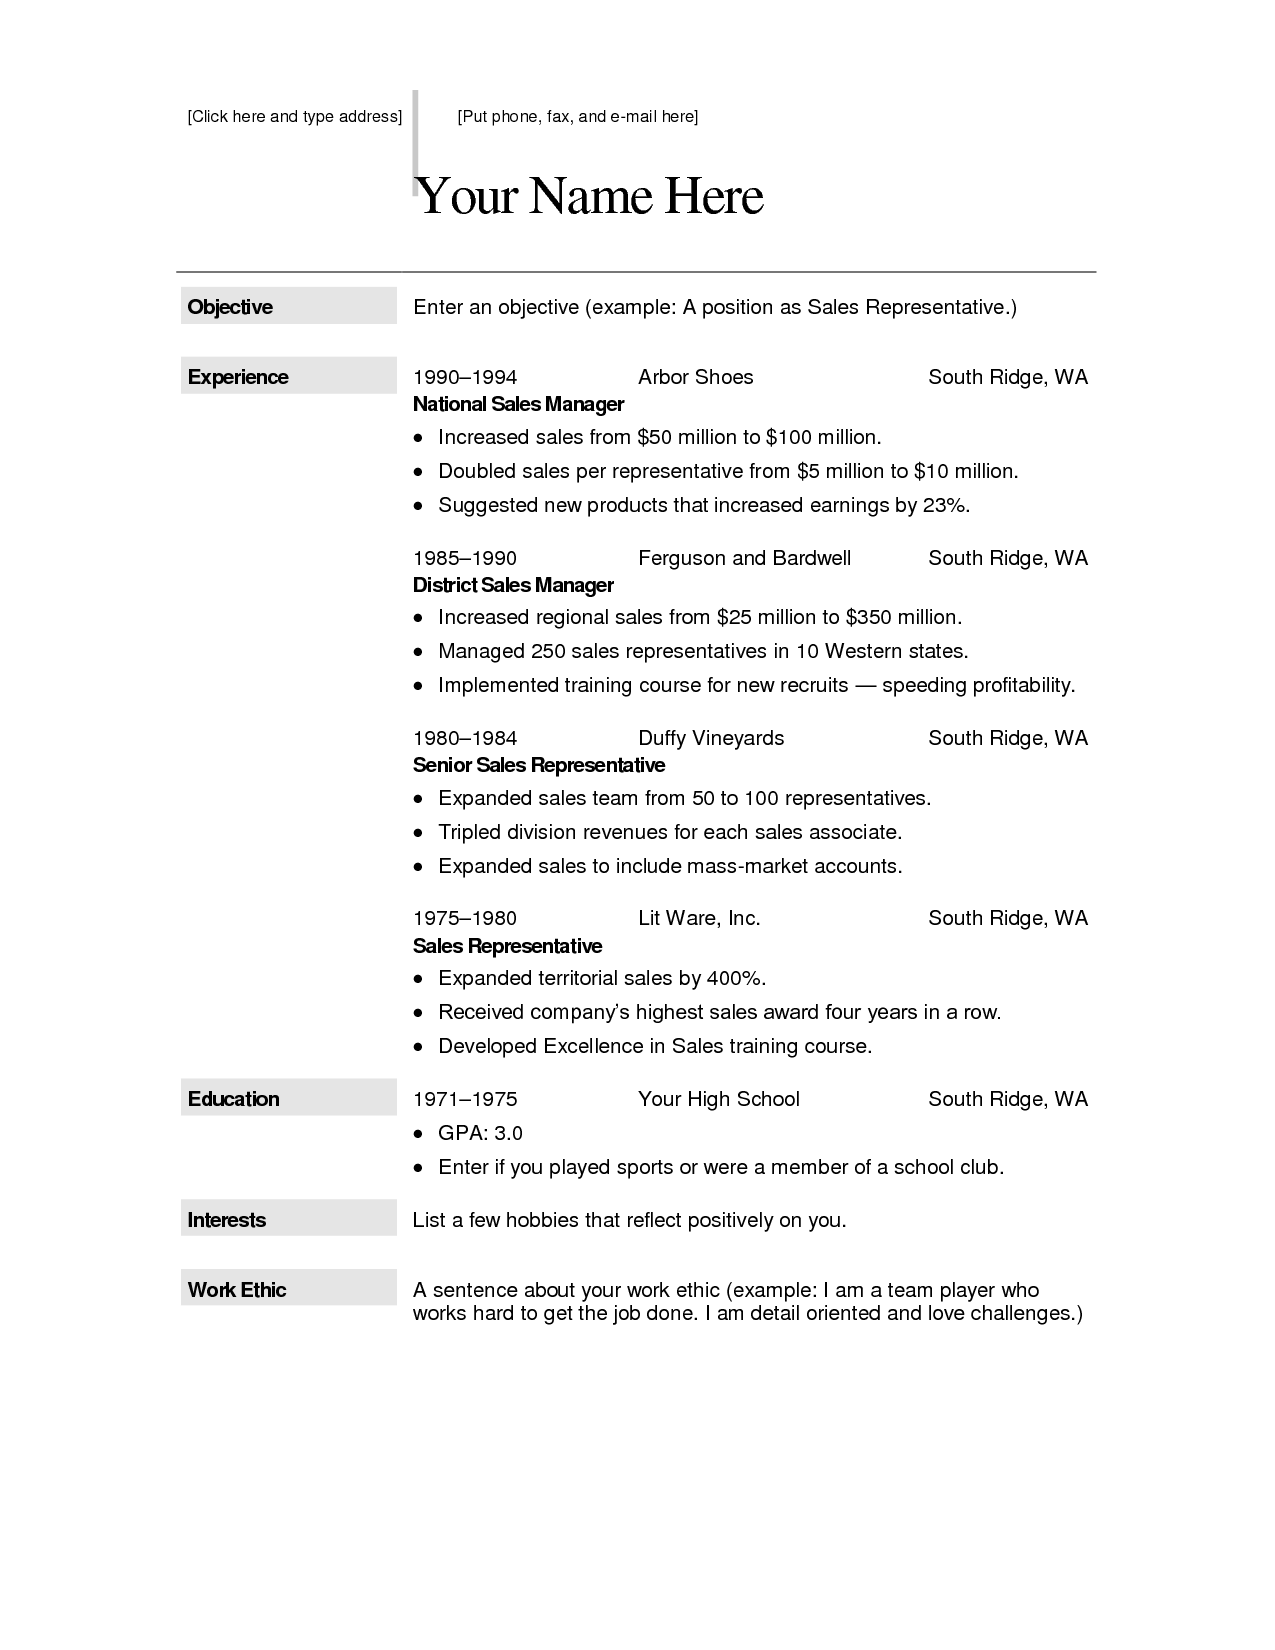 Resume Templates Word Free resume 2 Free Downloadable Resume Templates Microsoft Word Resume Templates In Microsoft Word